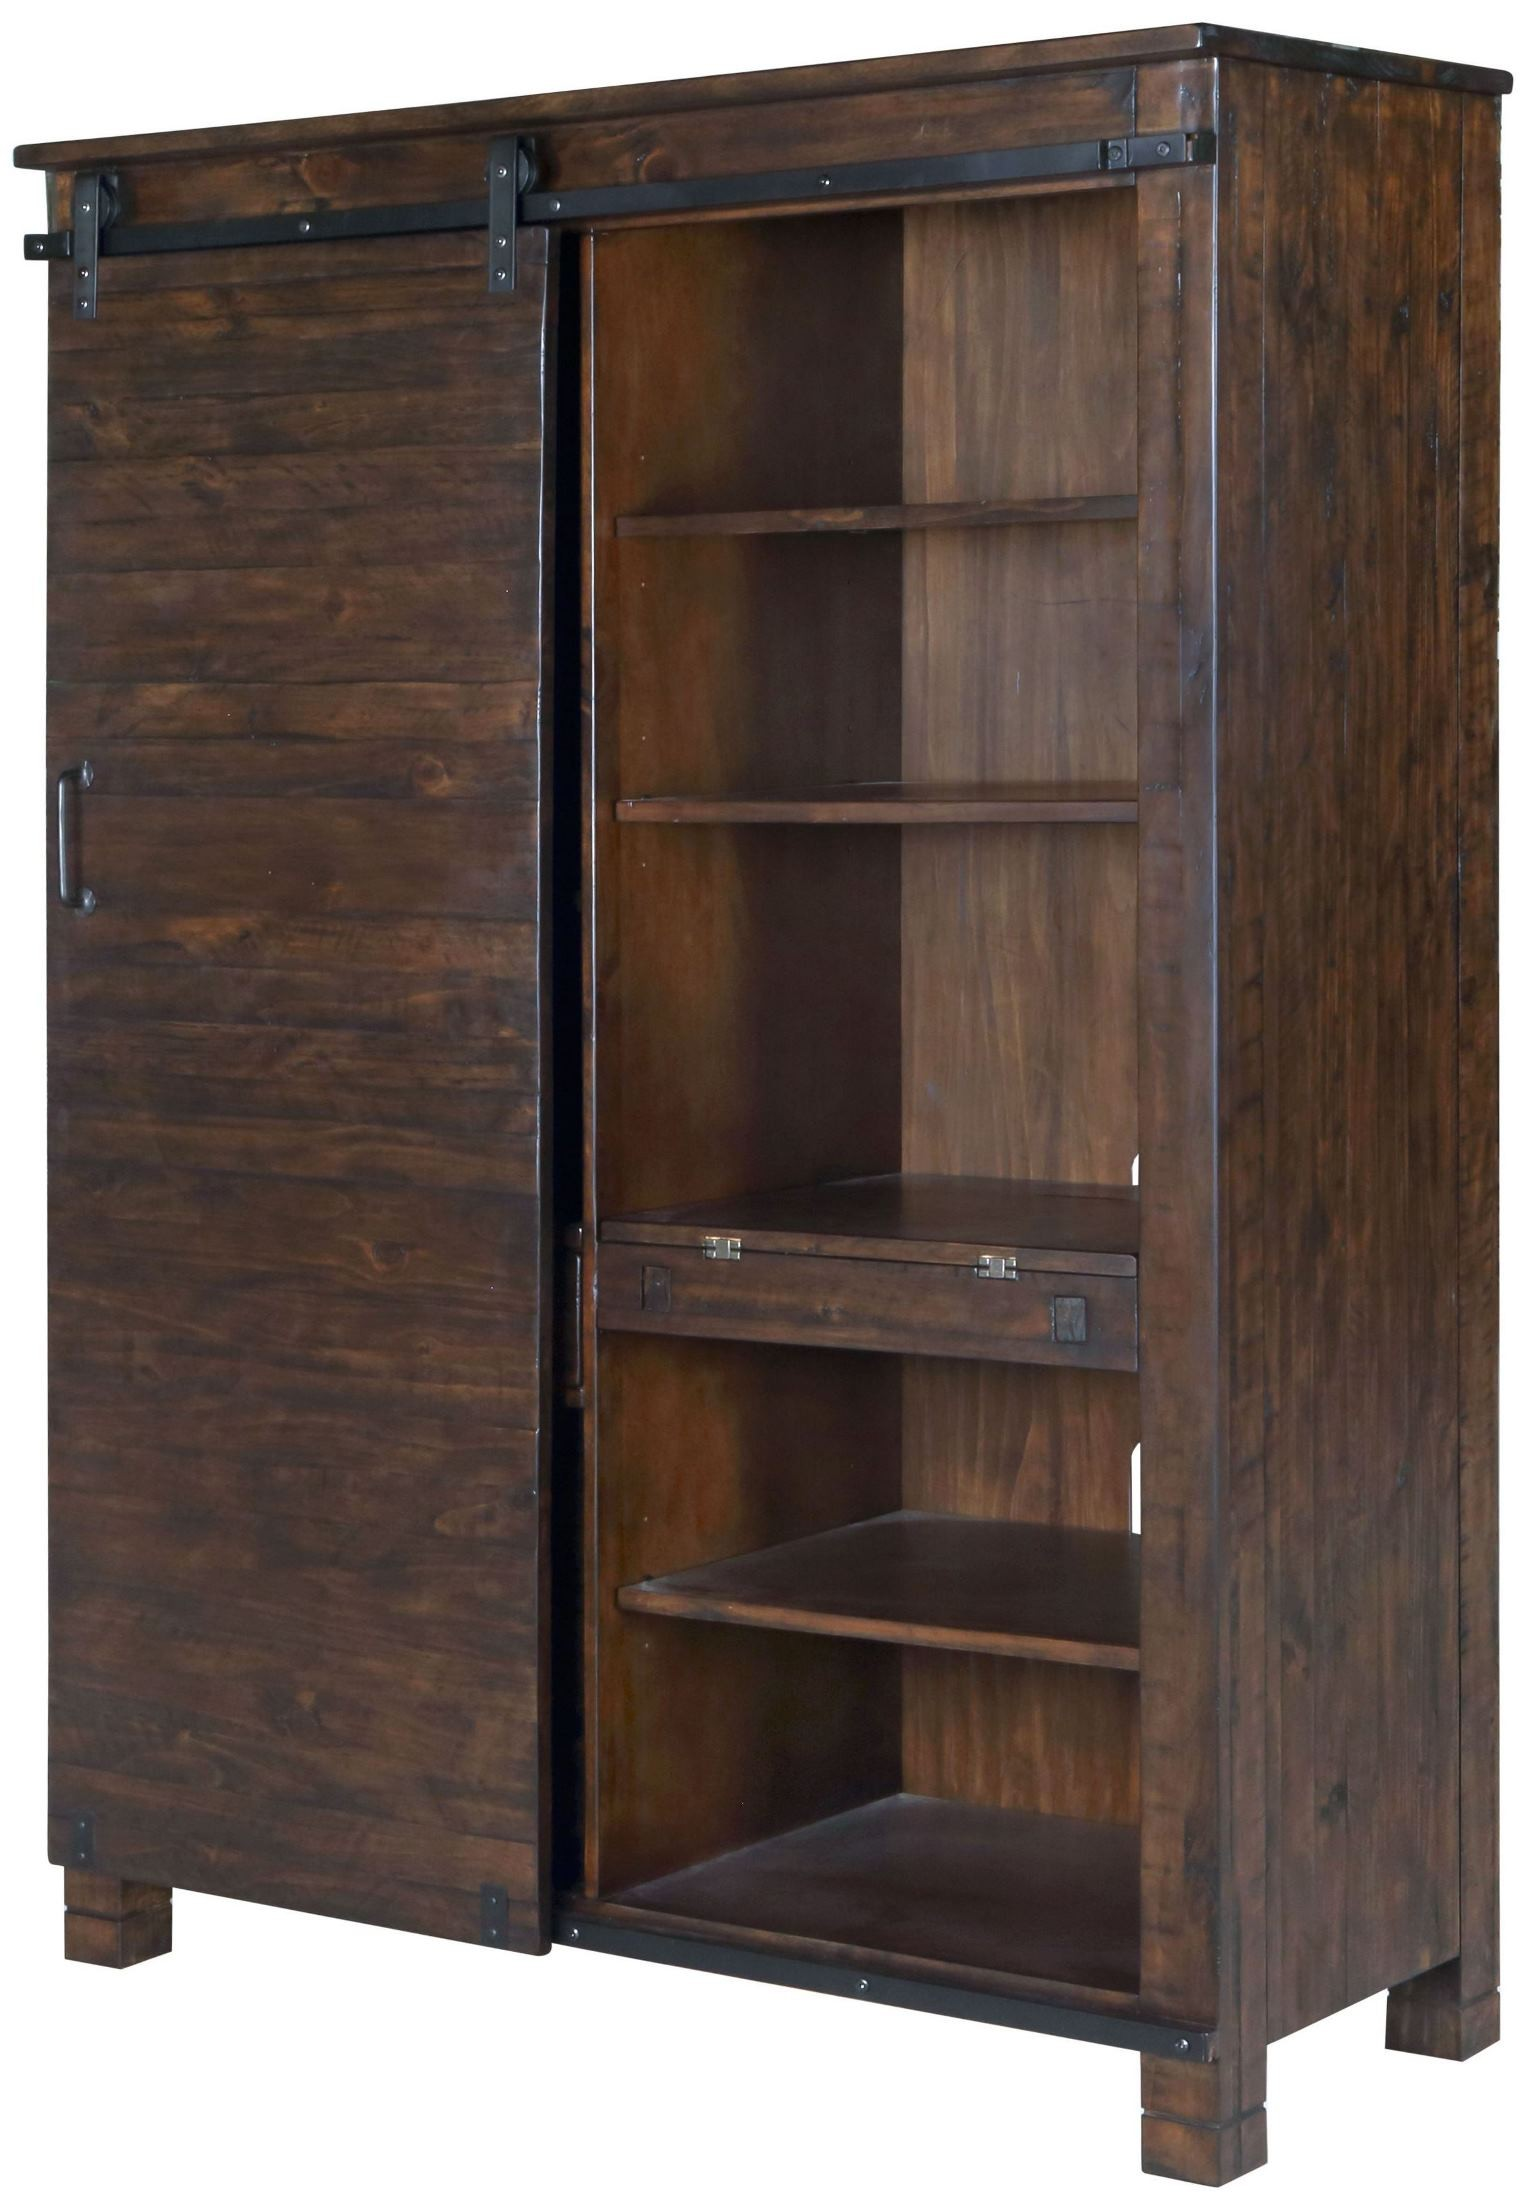 furniture white bookcases mannheim glass single barrister bookcase southern awesome danish door display enterprises lovely of sliding mahogany cabinet